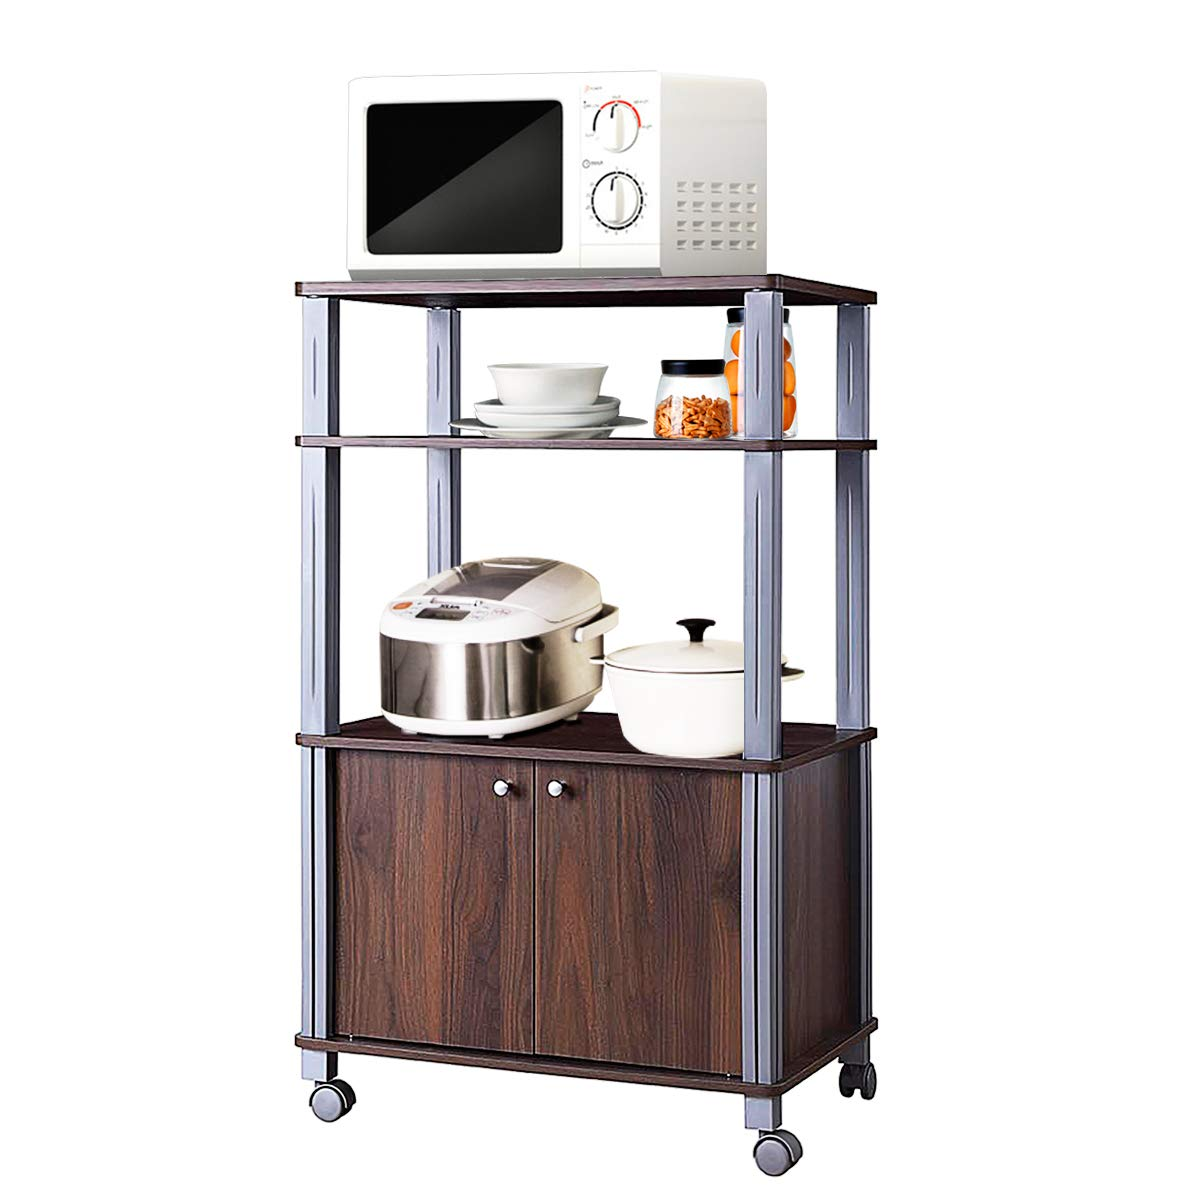 Giantex Rolling Kitchen Baker's Rack Microwave Oven Stand Utility Shelf on Wheels Storage Cart Spice Workstation Organizer with 2-Tier Shelf and Cabinet, Kitchen or Dining Room Furniture (Walnut)